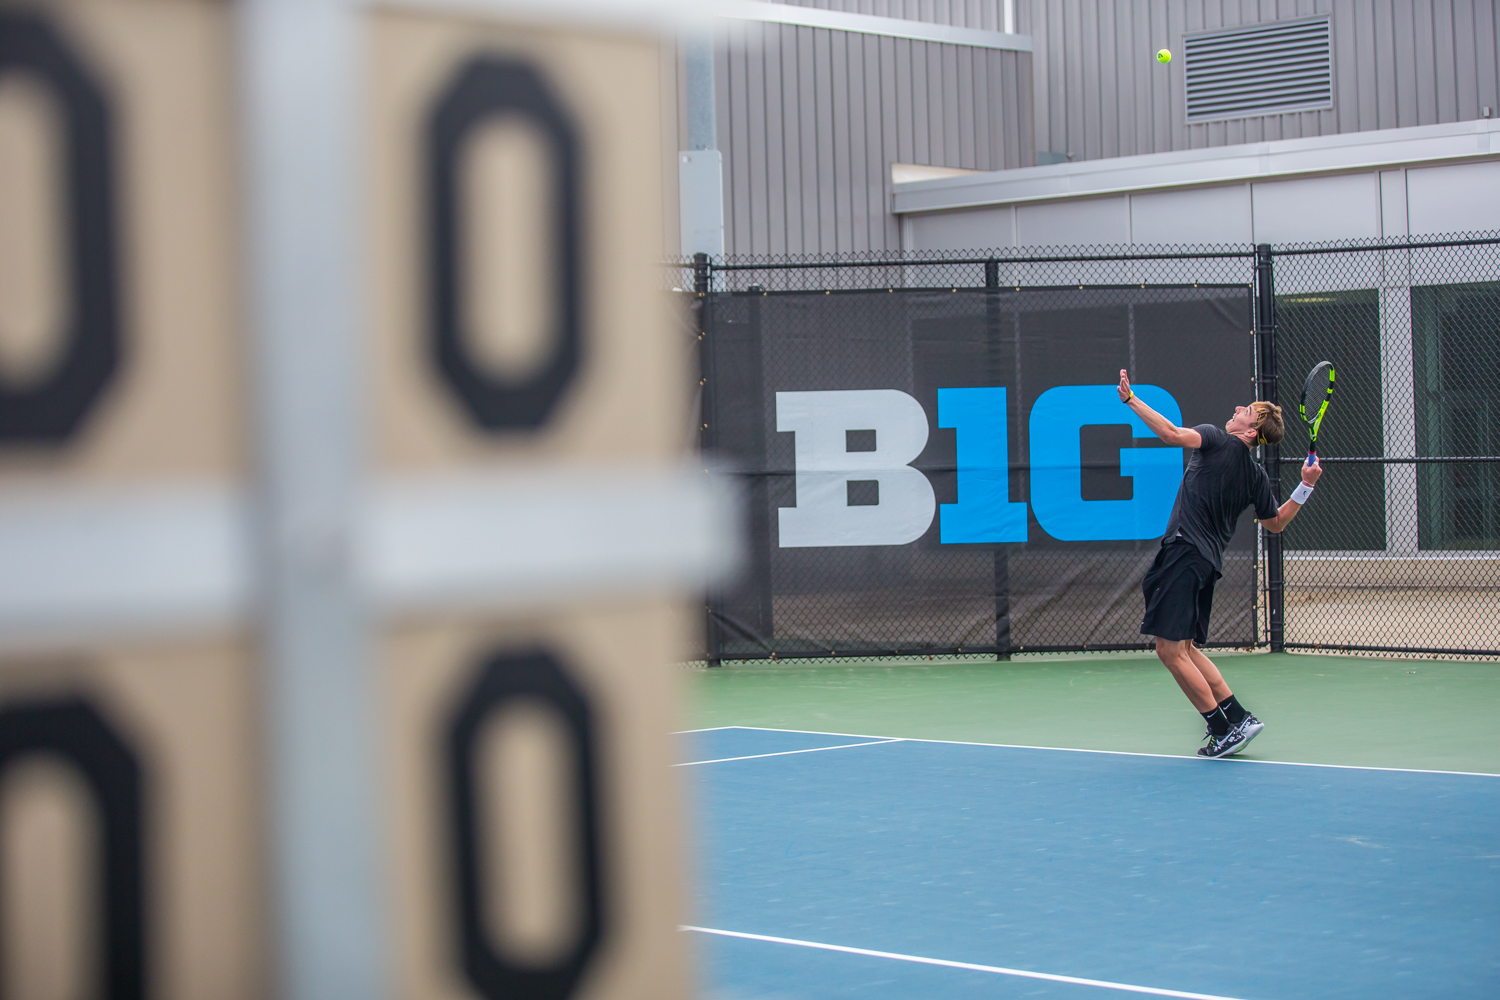 Iowa%27s+Nikita+Snezhko+hits+a+serve+during+a+men%27s+tennis+match+between+Iowa+and+Ohio+State+at+the+HTRC+on+Sunday%2C+April+7%2C+2019.+The+Buckeyes+defeated+the+Hawkeyes%2C+4-1.